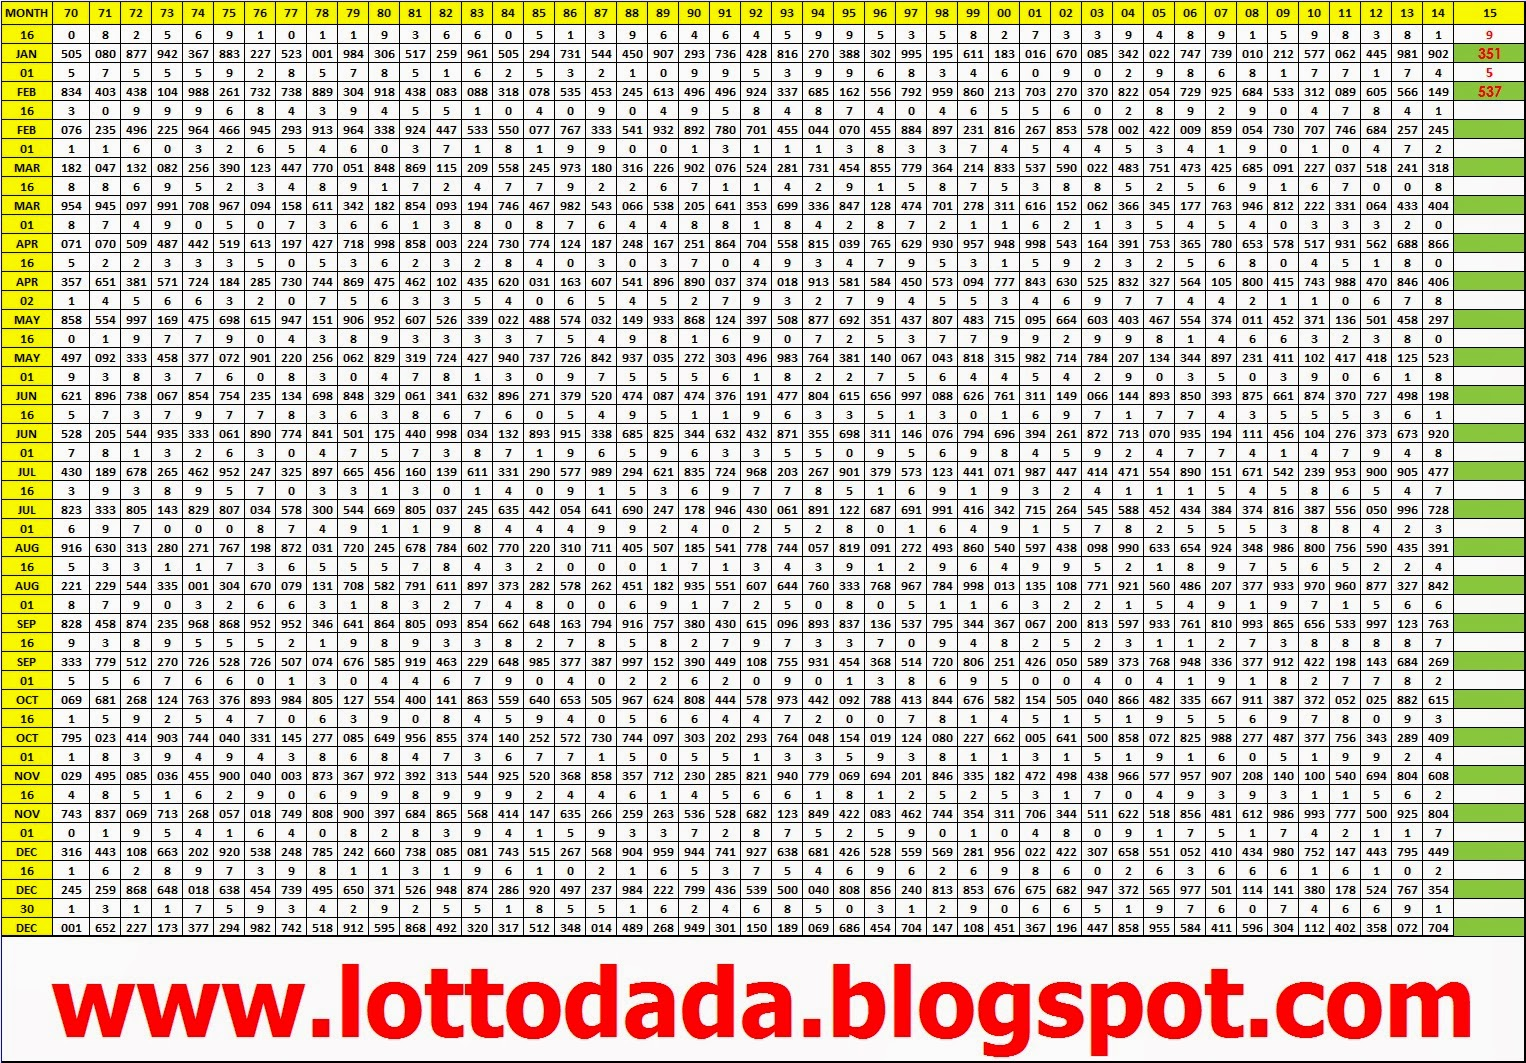 thai lotto chart 2016: Thai lottery result chart from 1970 to 2016 thai lotto vip 01 05